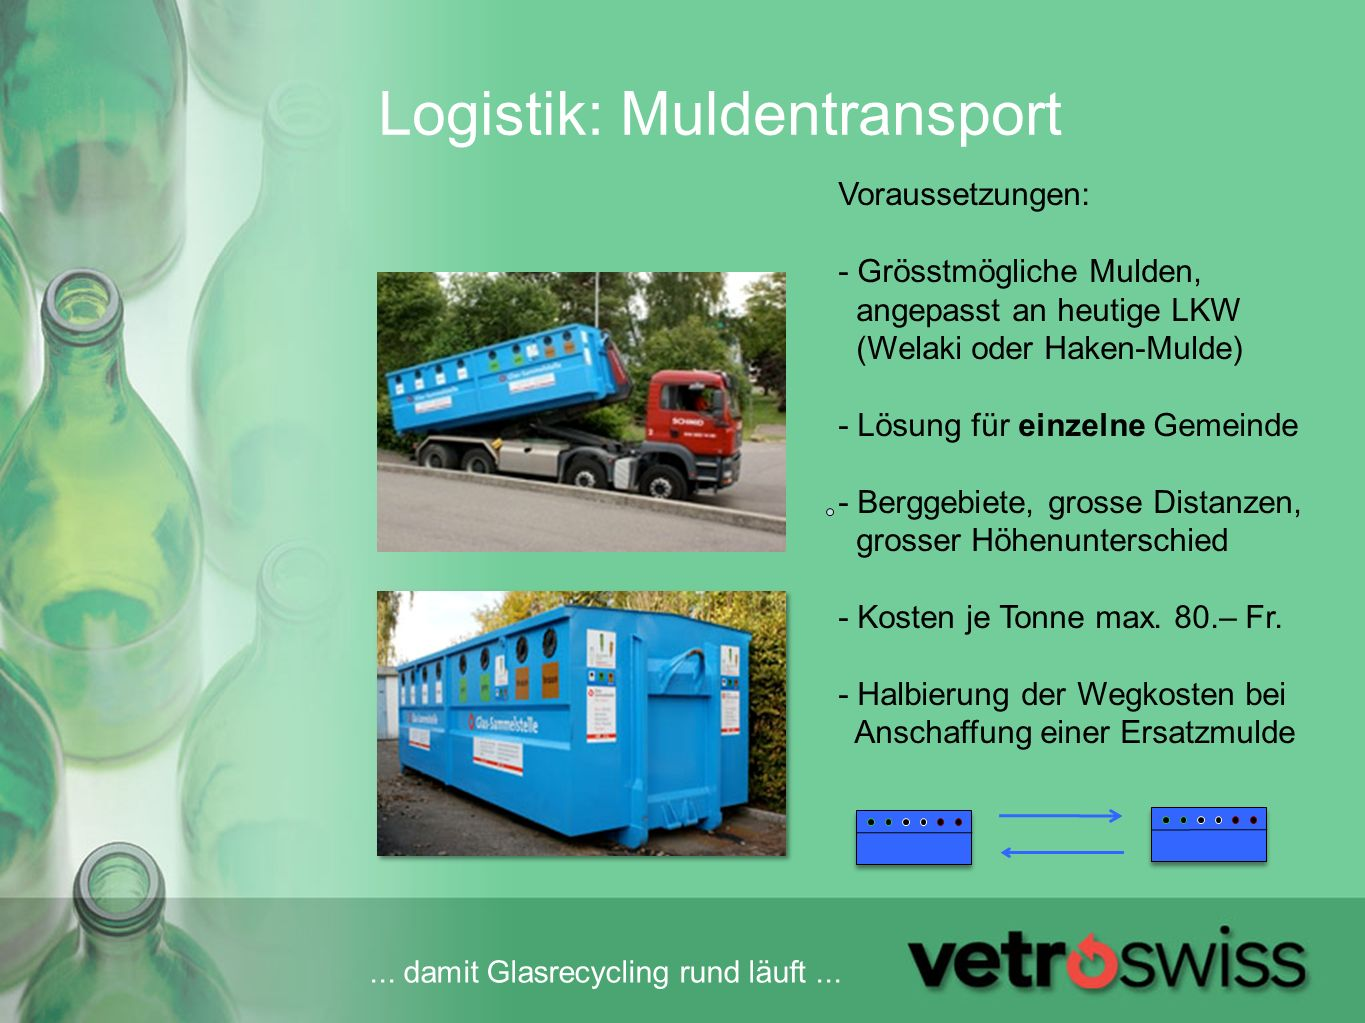 Logistik: Muldentransport